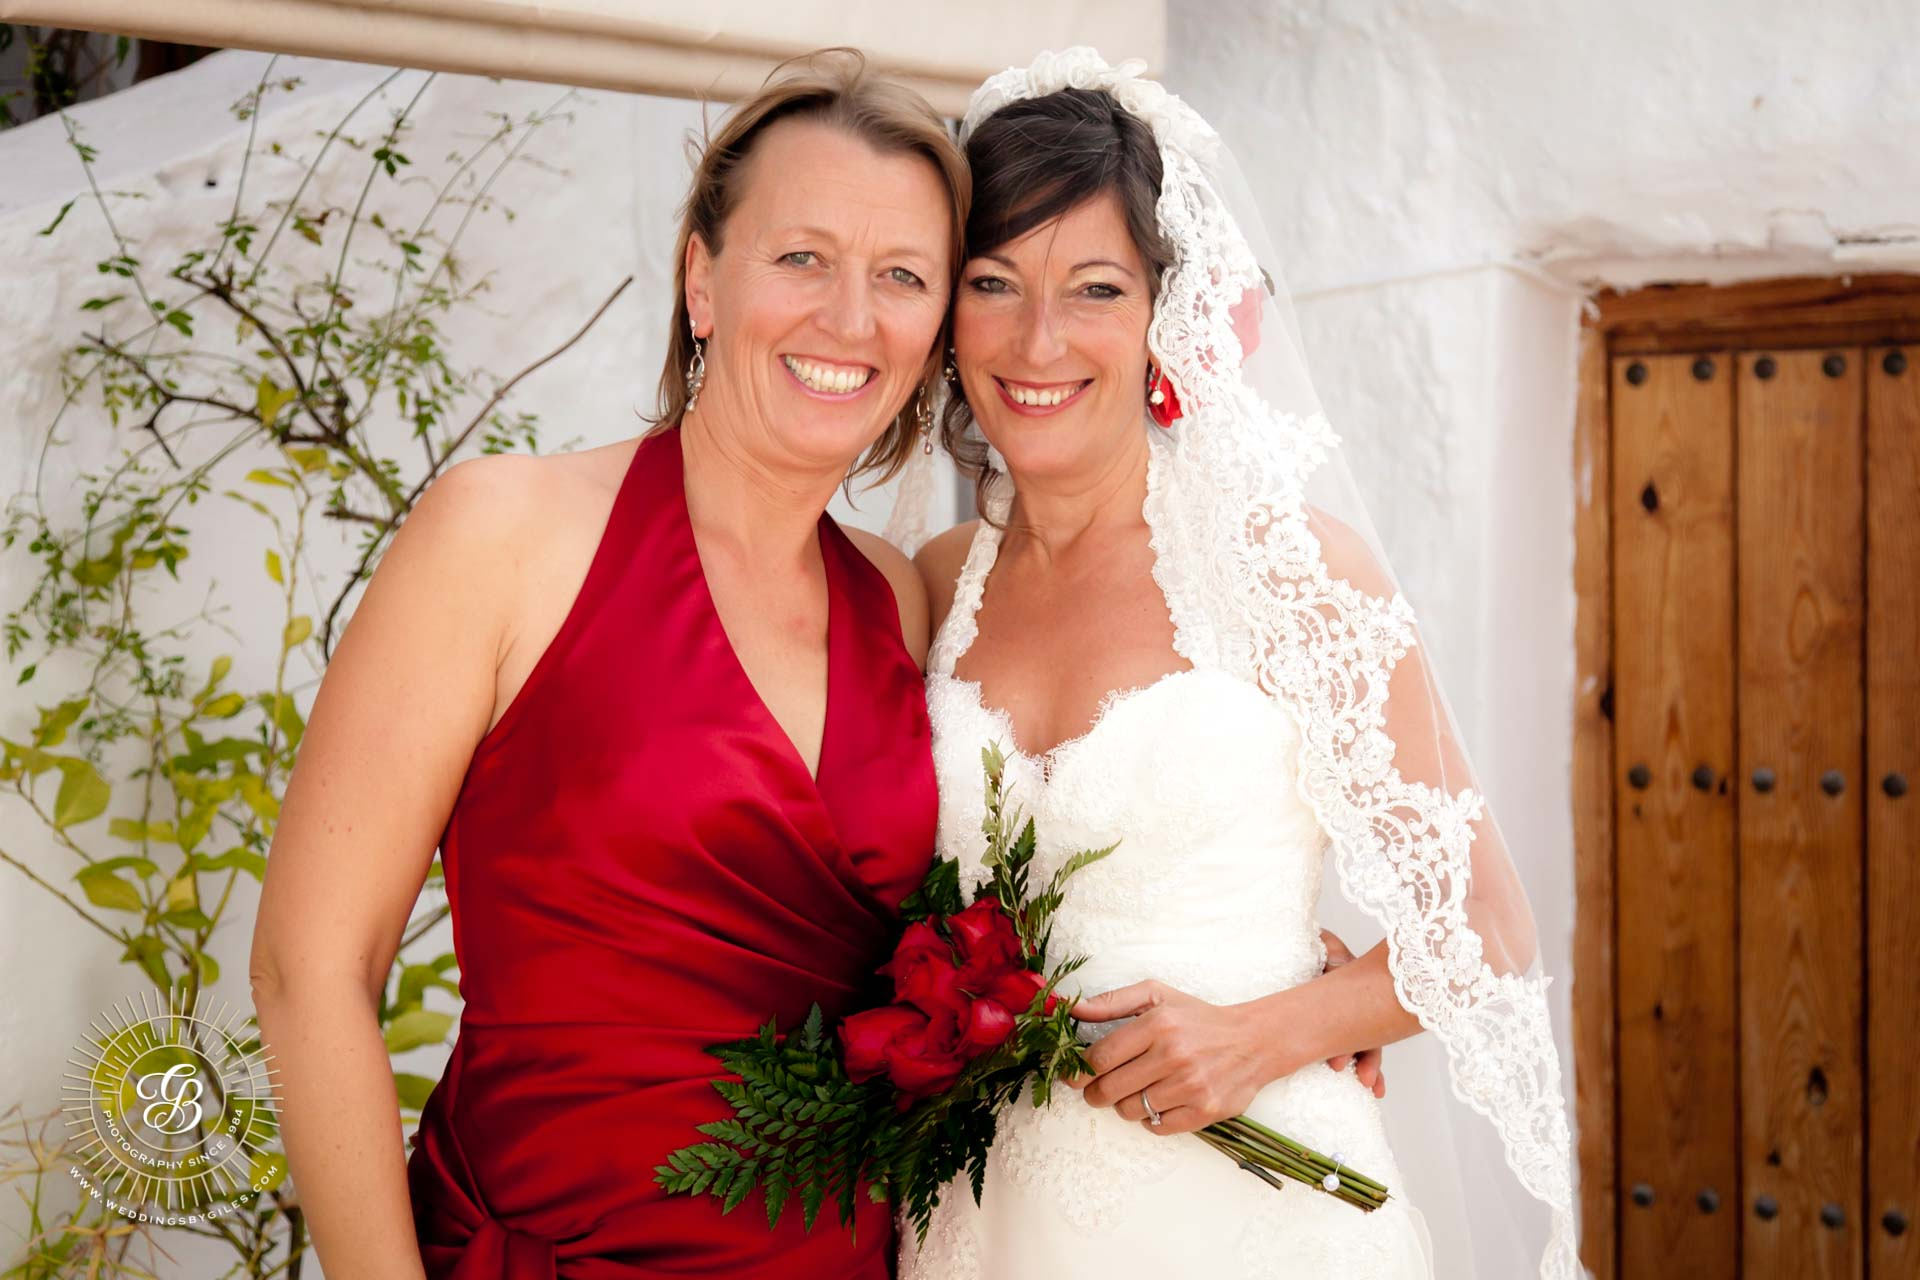 Bride with her maid or honnor